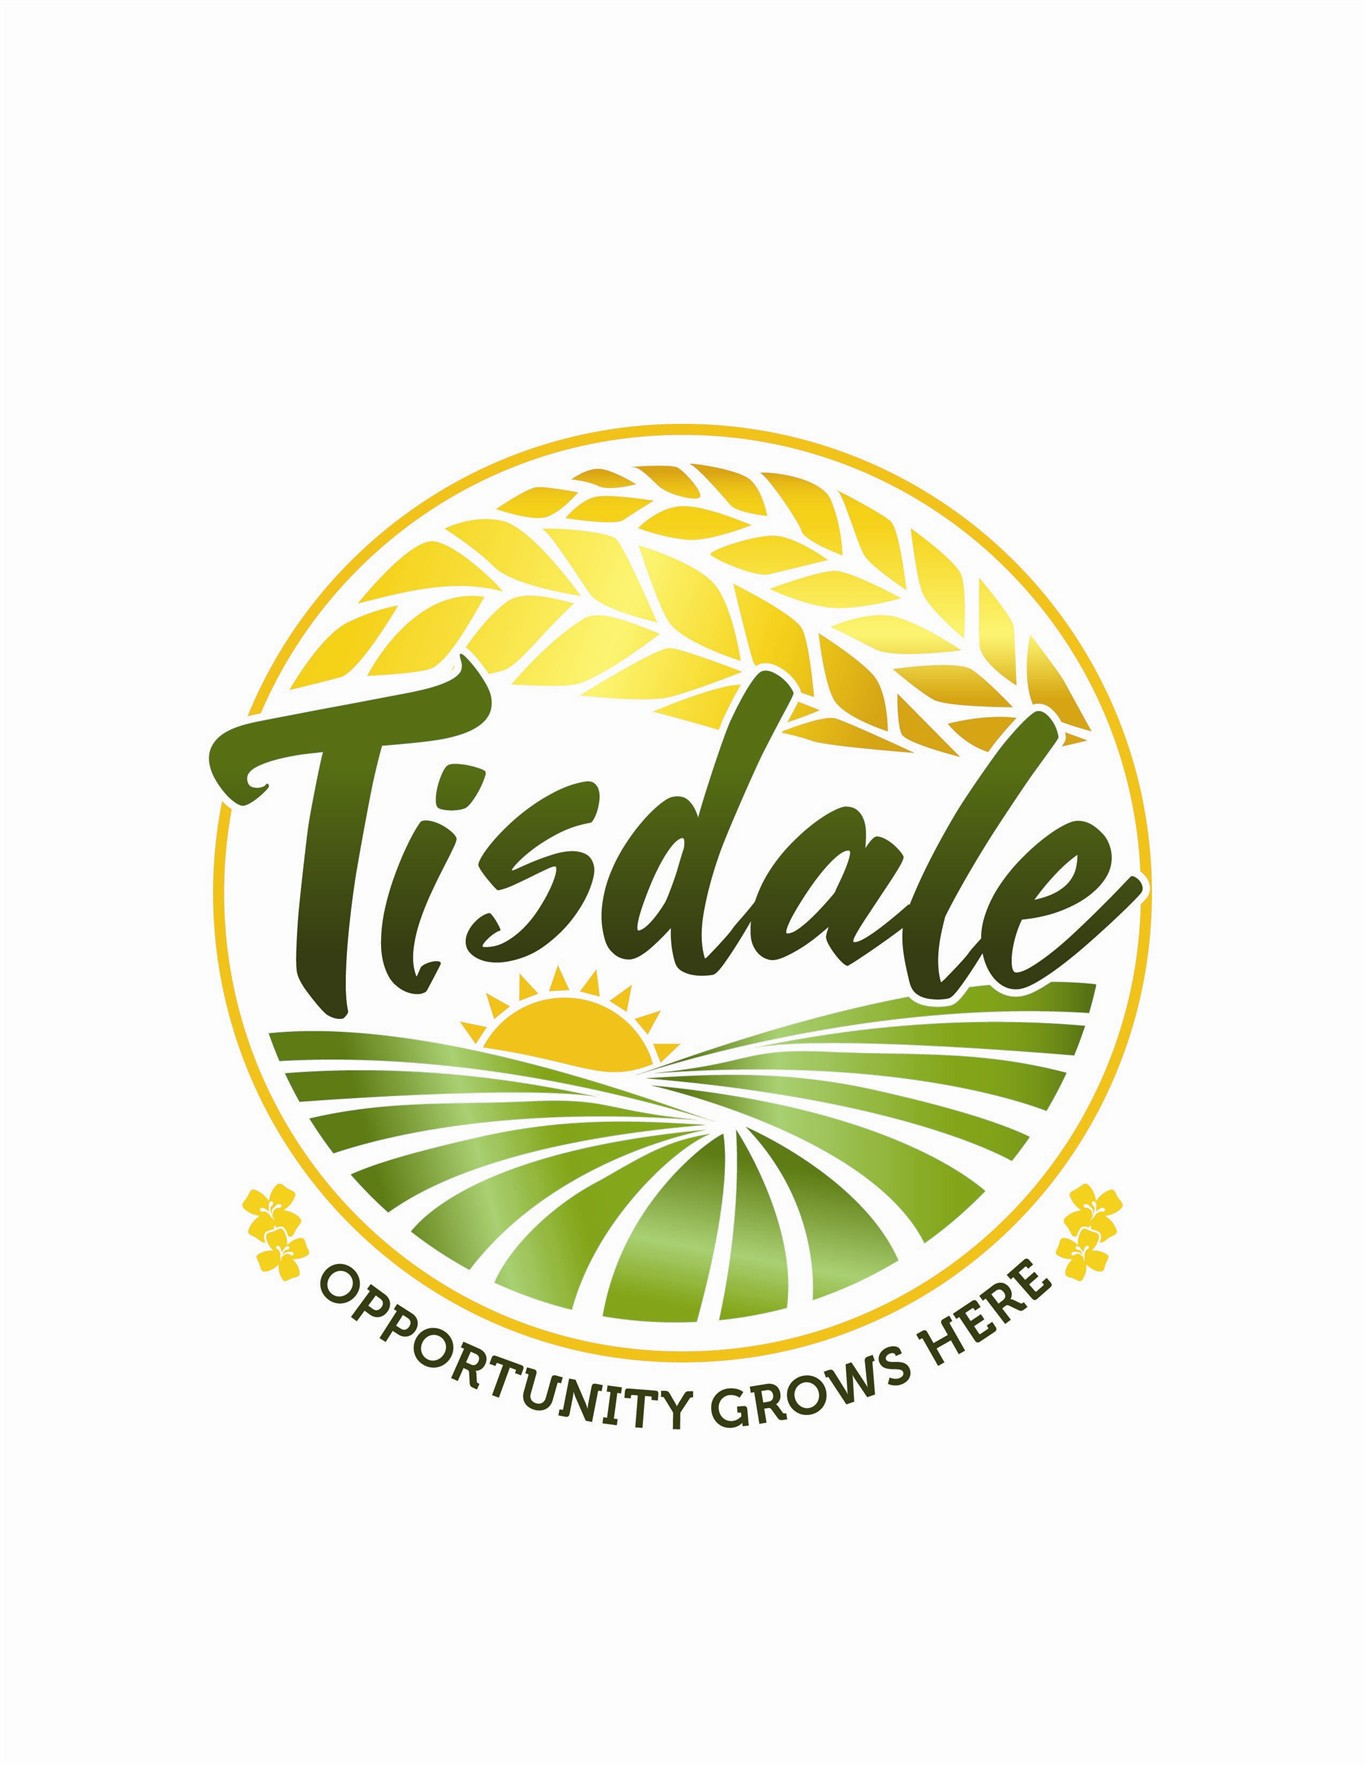 """The town of Tisdale in northern Saskatchewan is no longer using the slogan """"Land of Rape and Honey."""" The community has revealed a new logo (shown) with the catchphrase """"Opportunity Grows Here."""" THE CANADIAN PRESS/HO-Town of Tisdale MANDATORY CREDIT"""